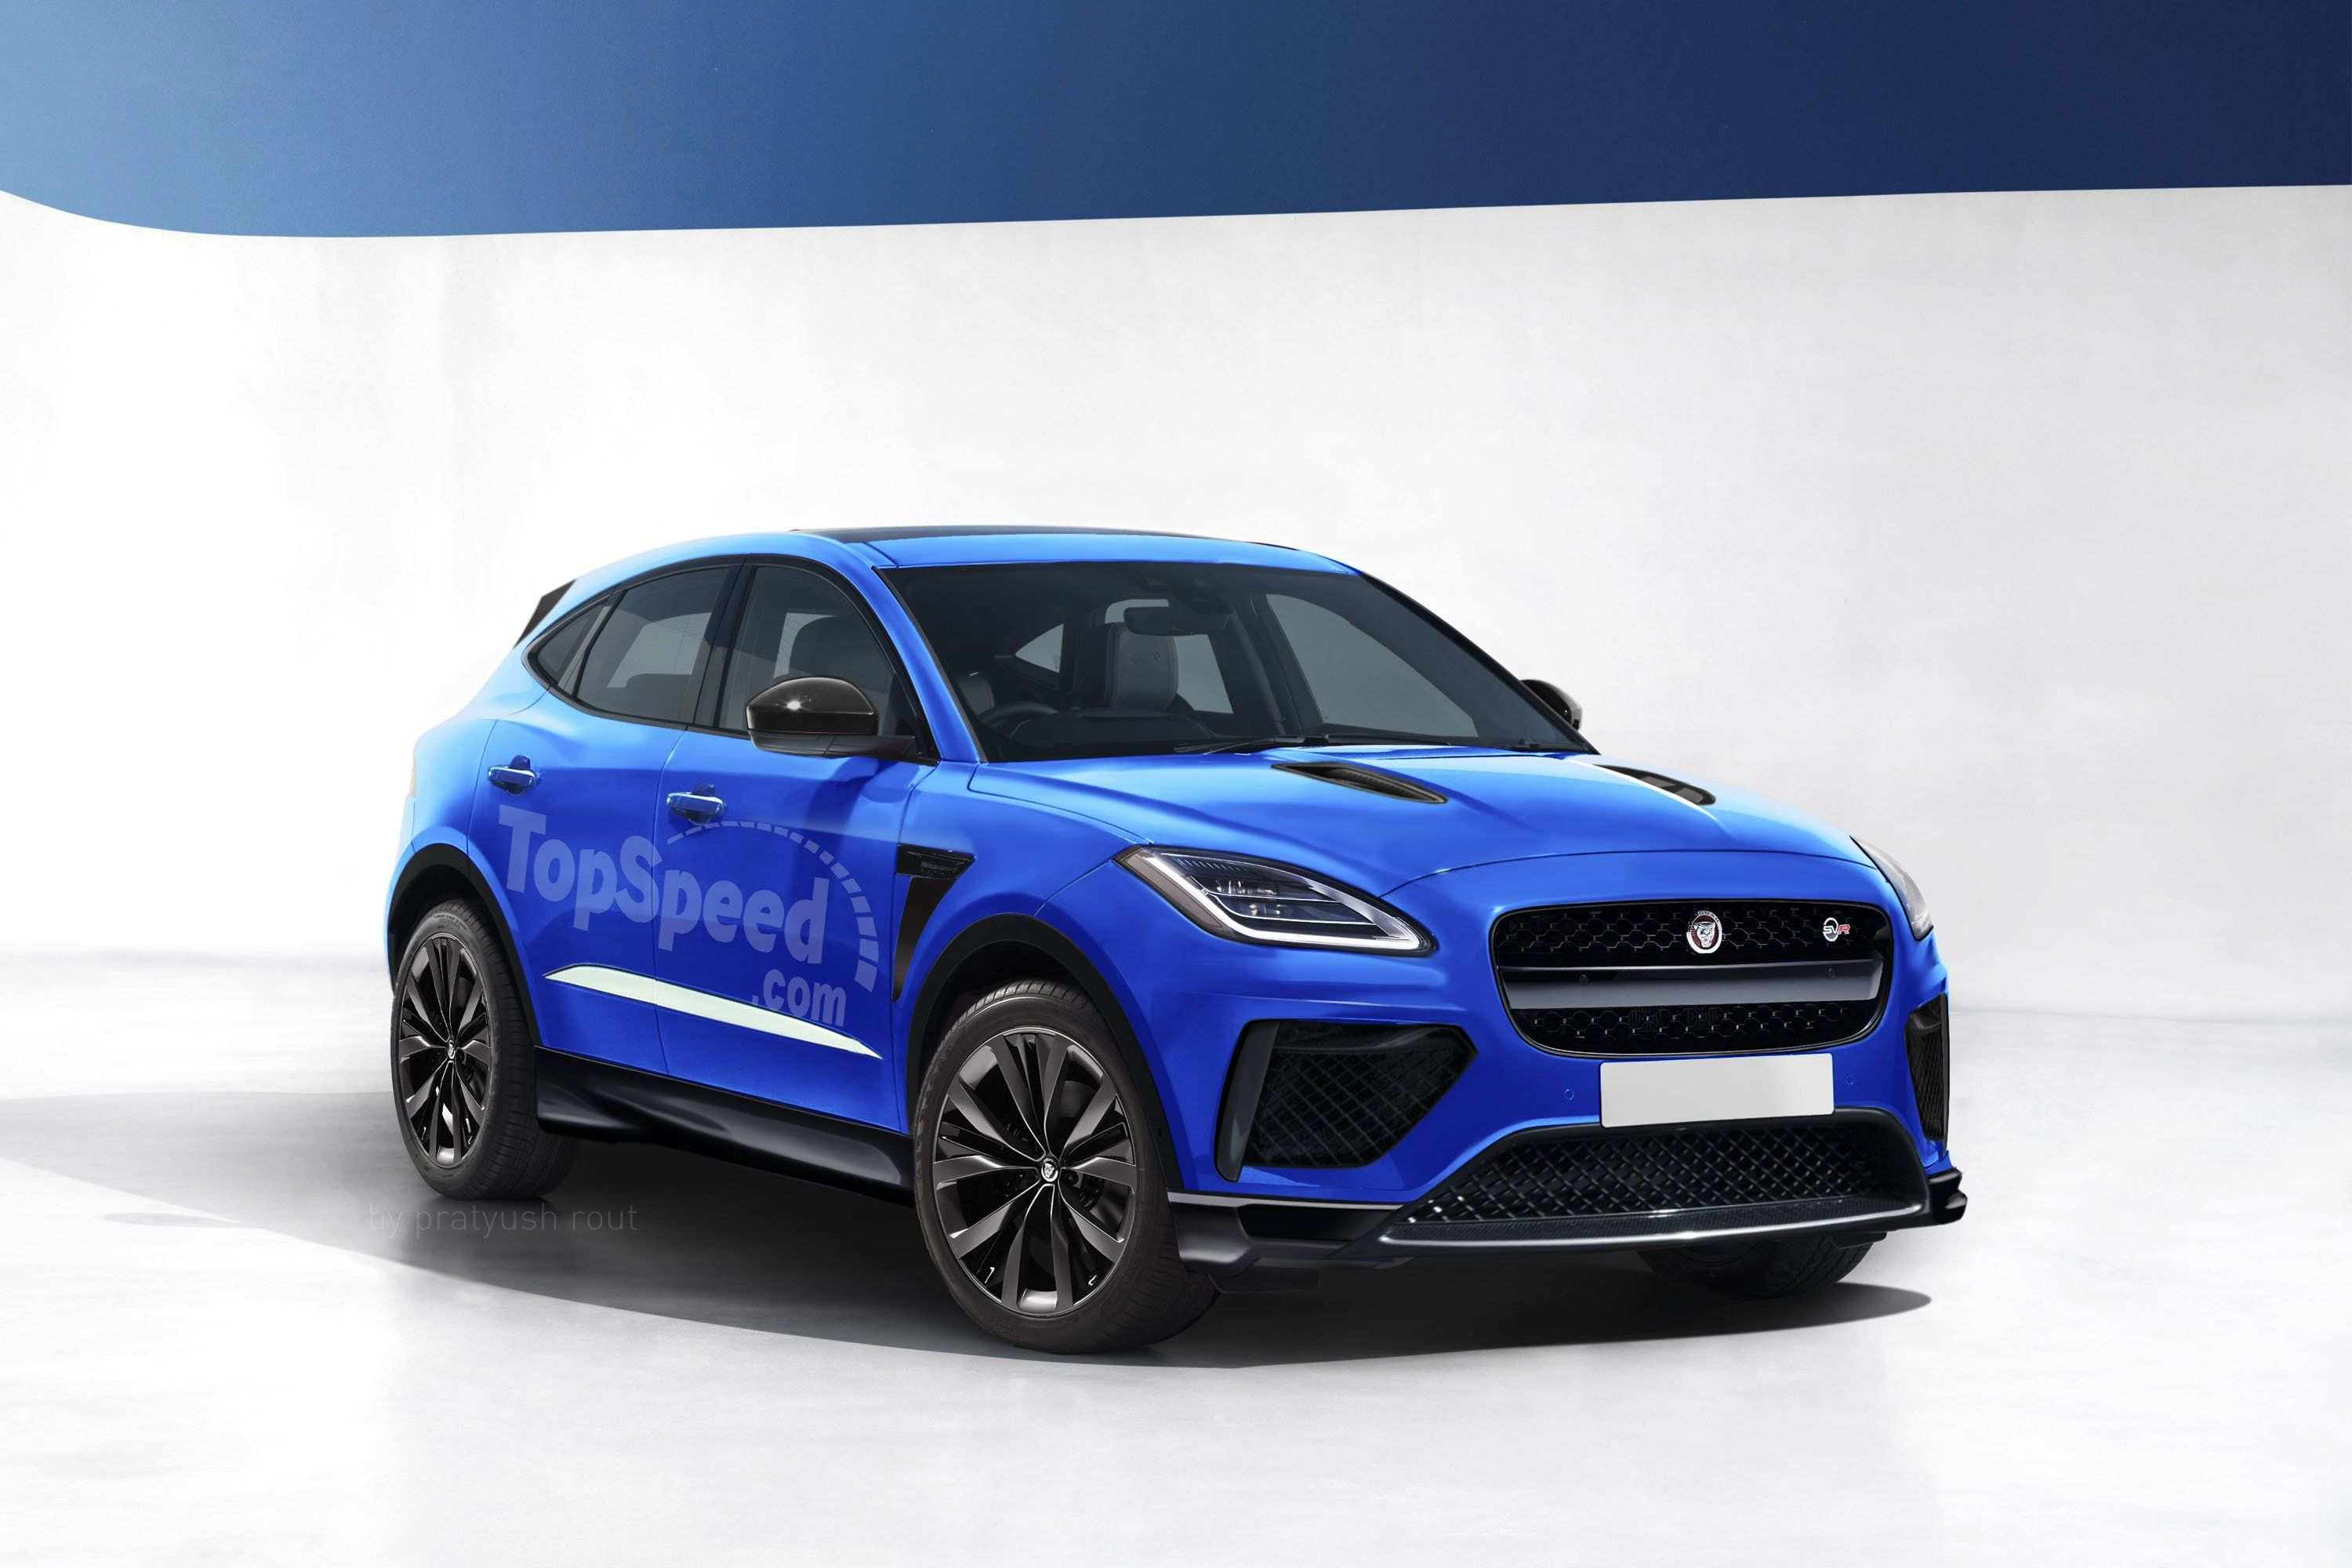 56 The Jaguar F Pace 2020 New Concept New Concept for Jaguar F Pace 2020 New Concept